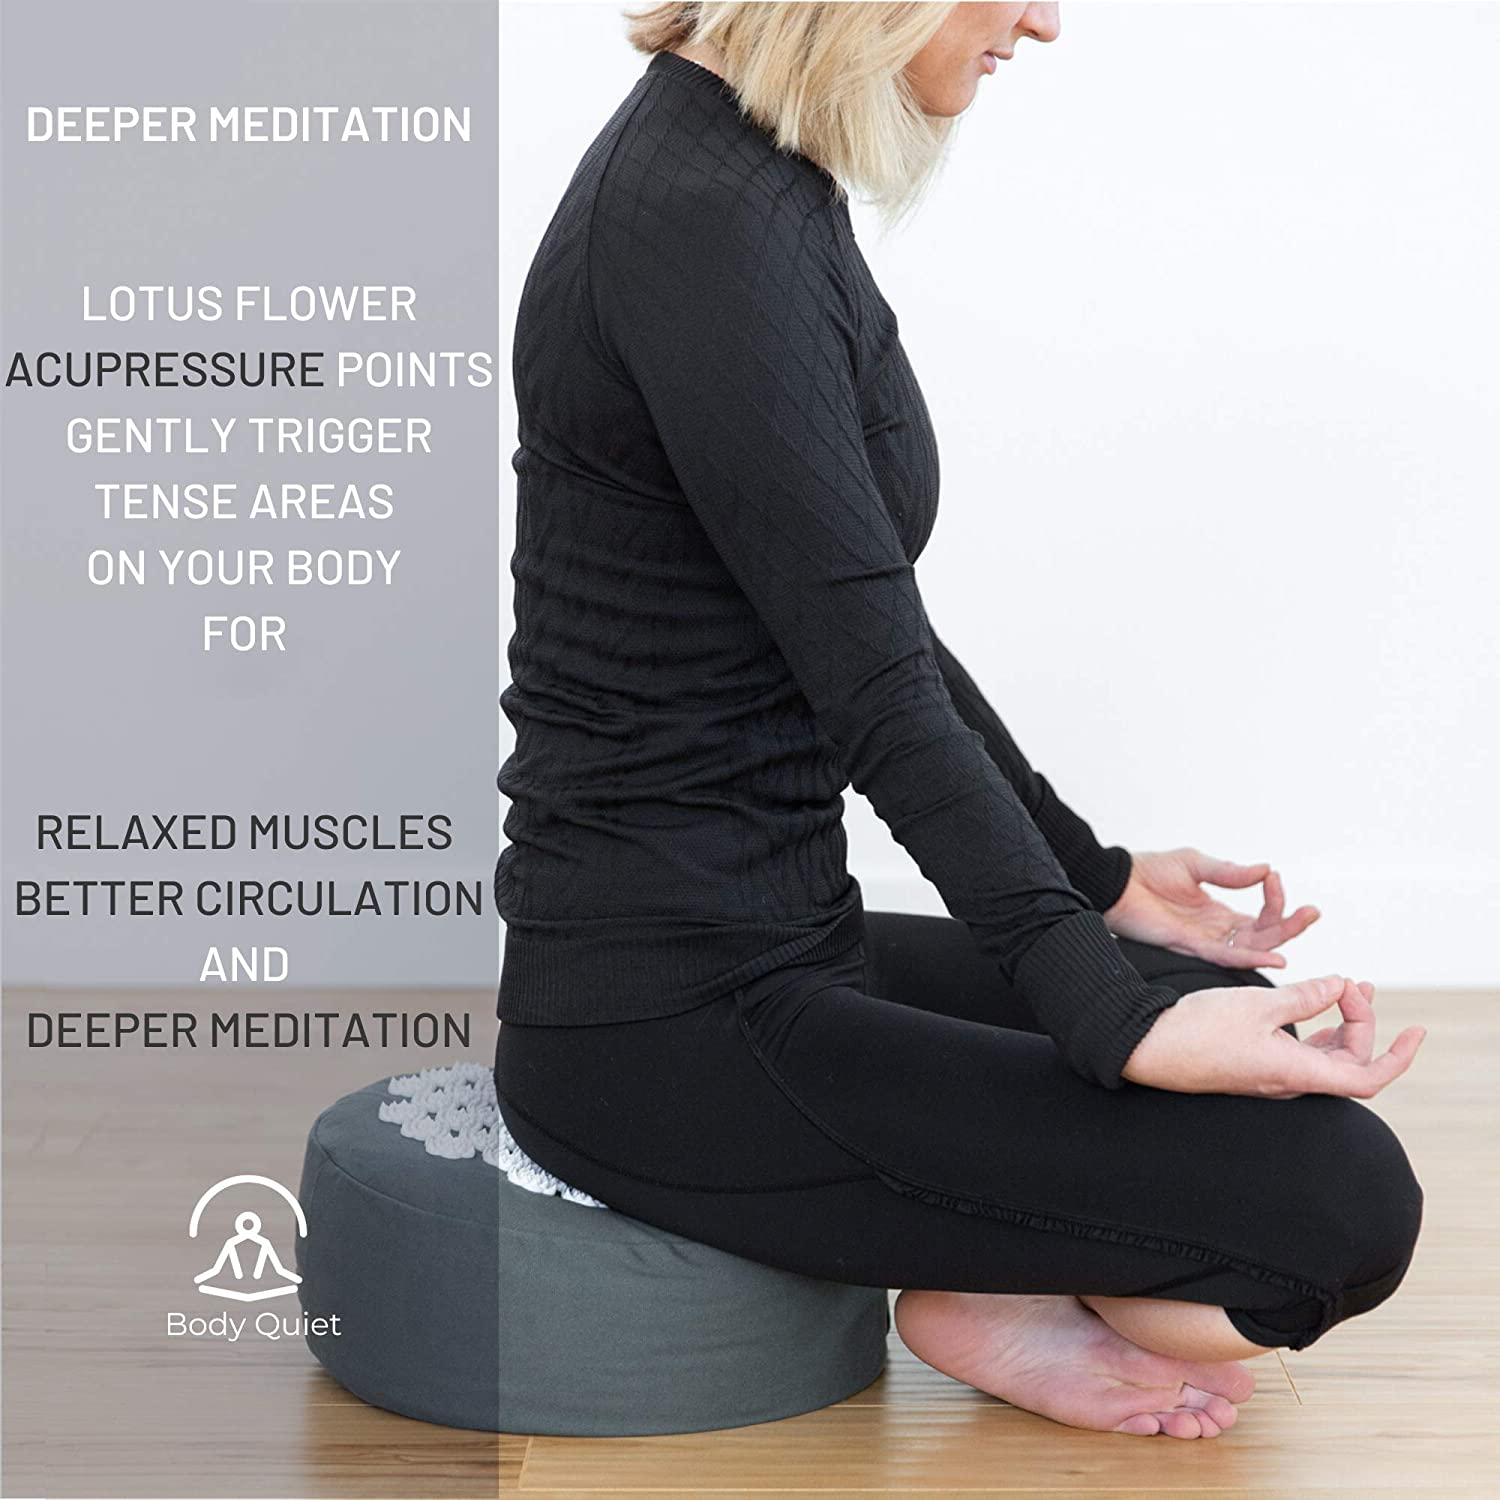 Body Quiet Meditation Cushion with Acupressure for Stress Relief | Large 13